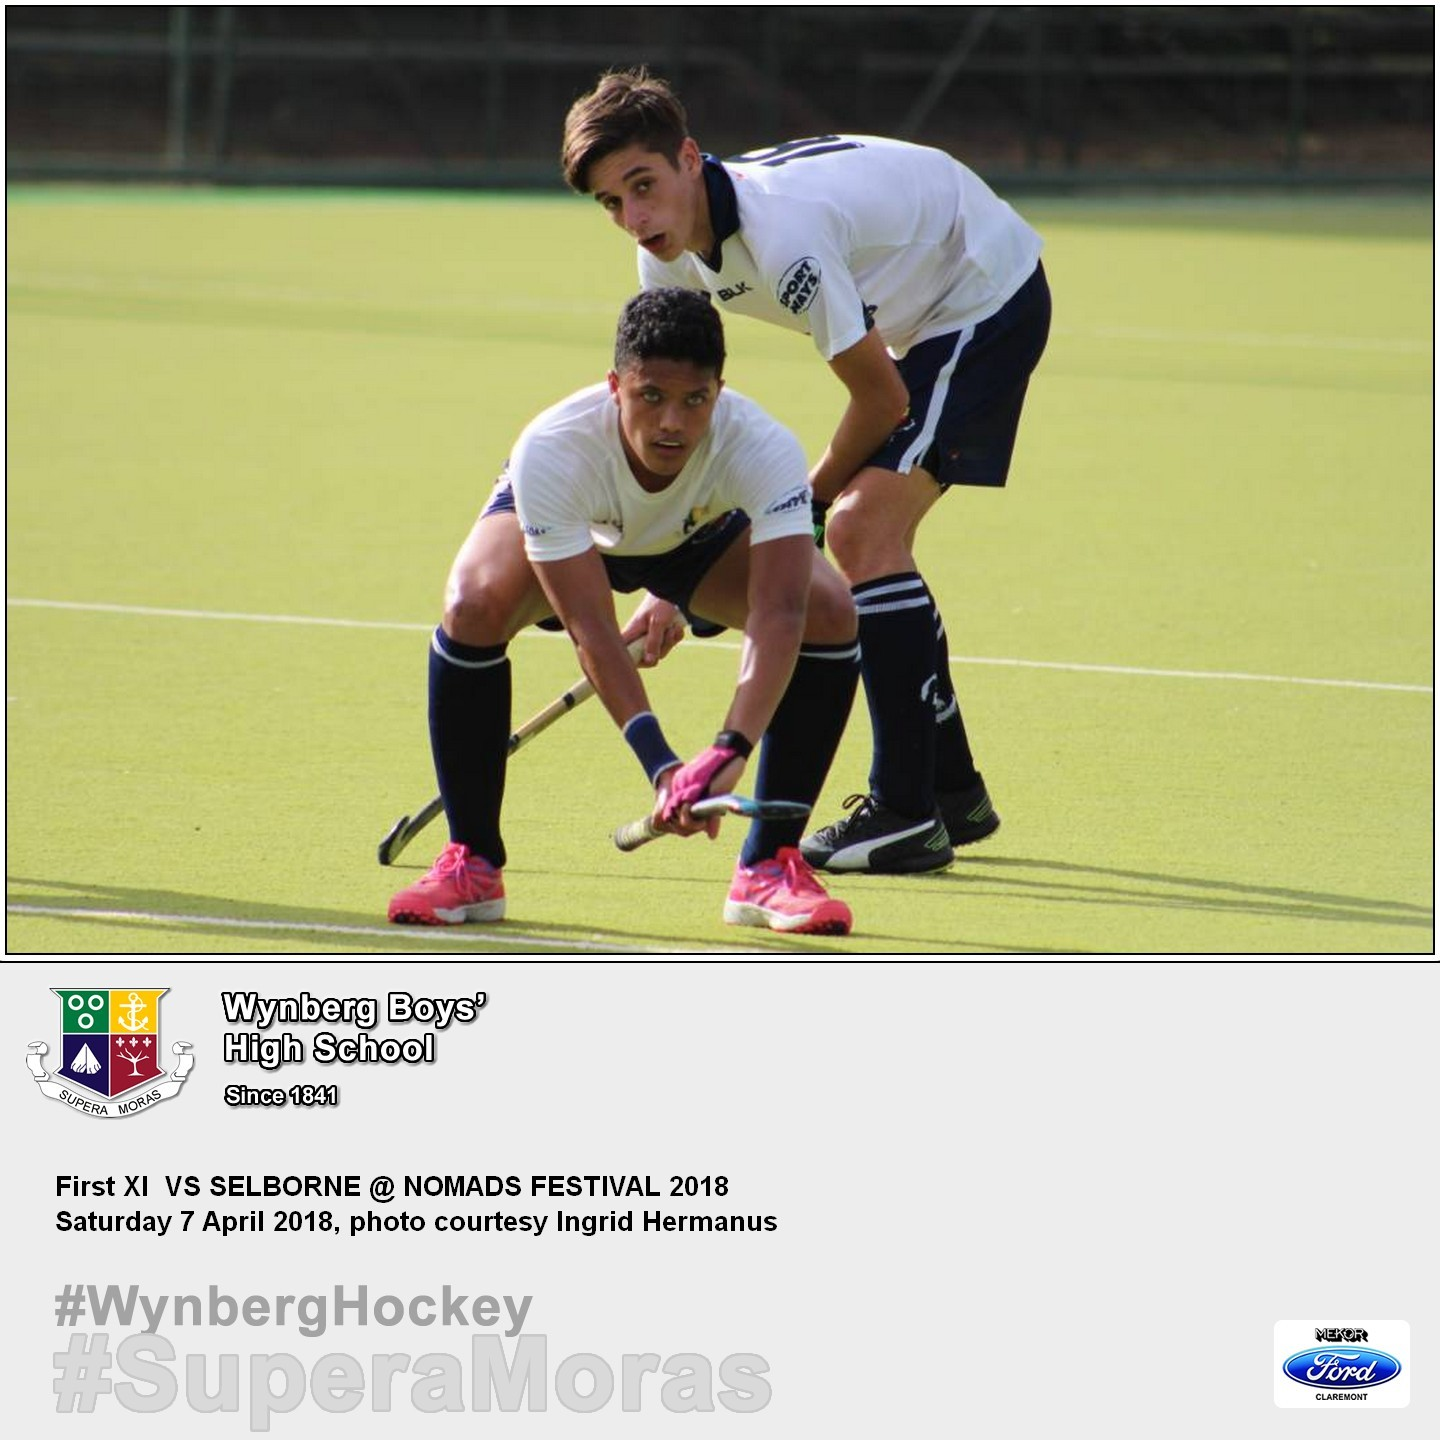 1st XI vs Selborne, Saturday 7 April 2018